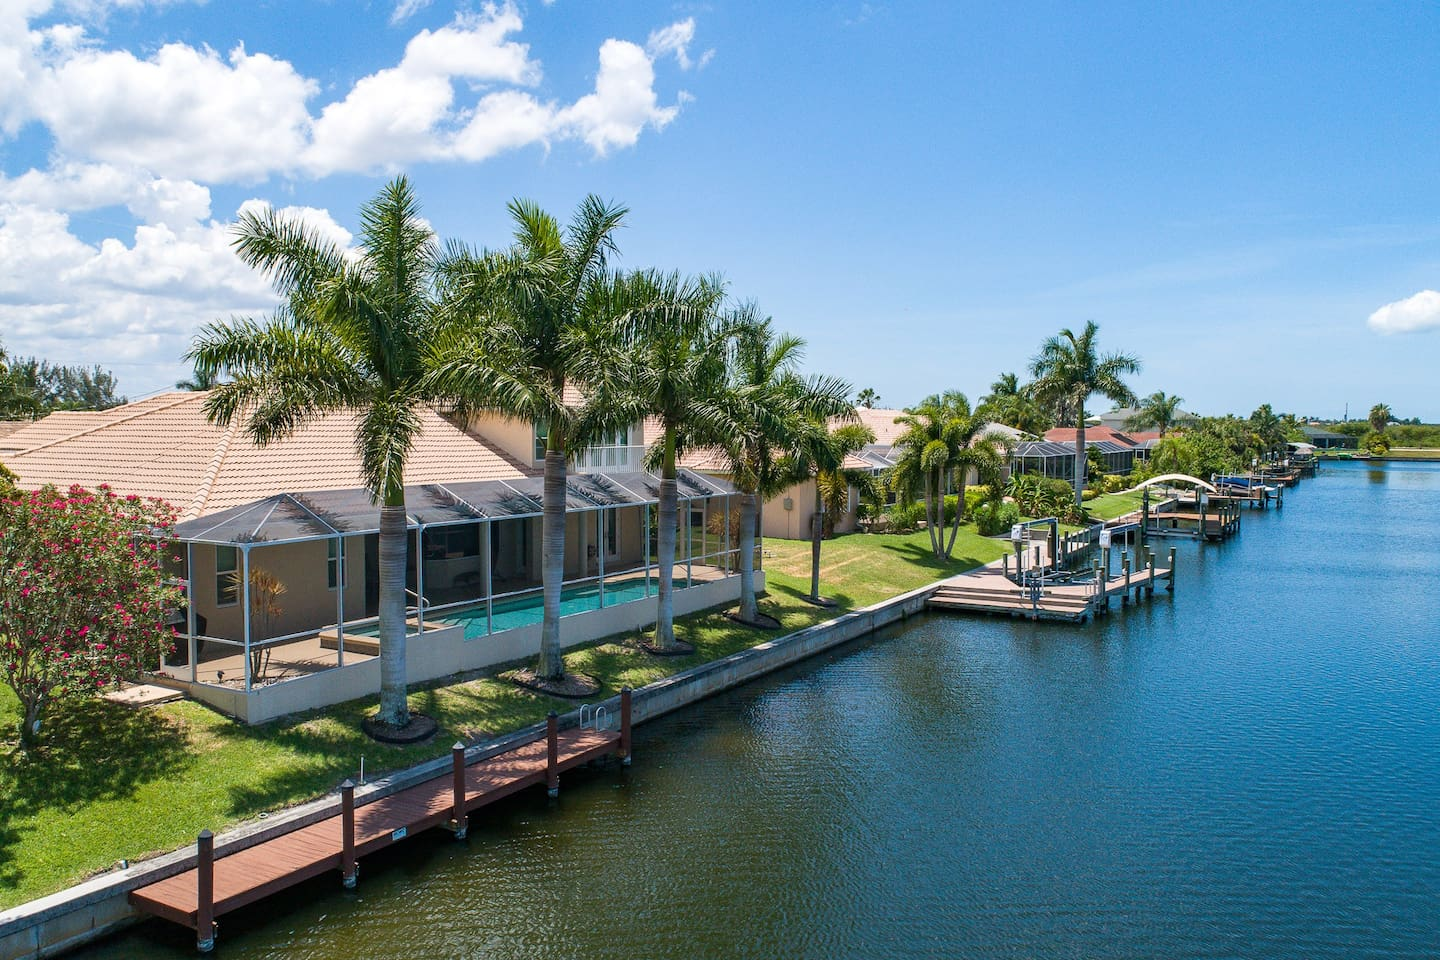 Stunning water views and beautiful intersecting tropical waterways